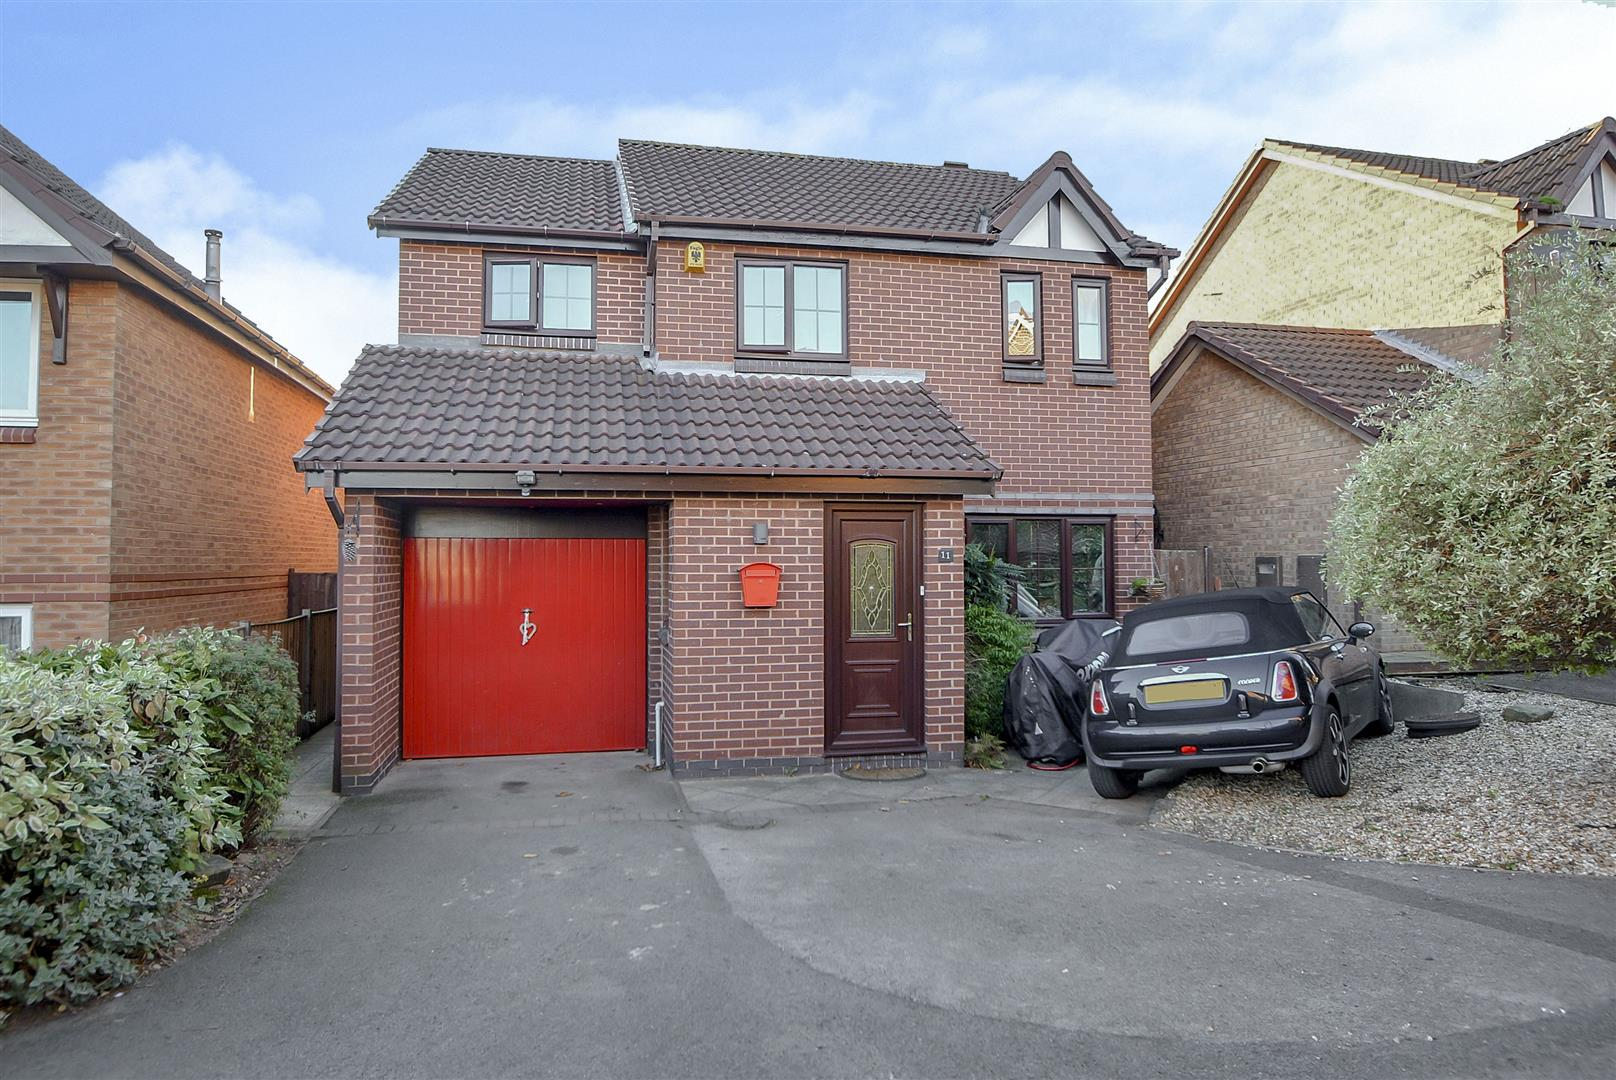 4 Bedrooms Detached House for sale in Lichfield Close, Toton